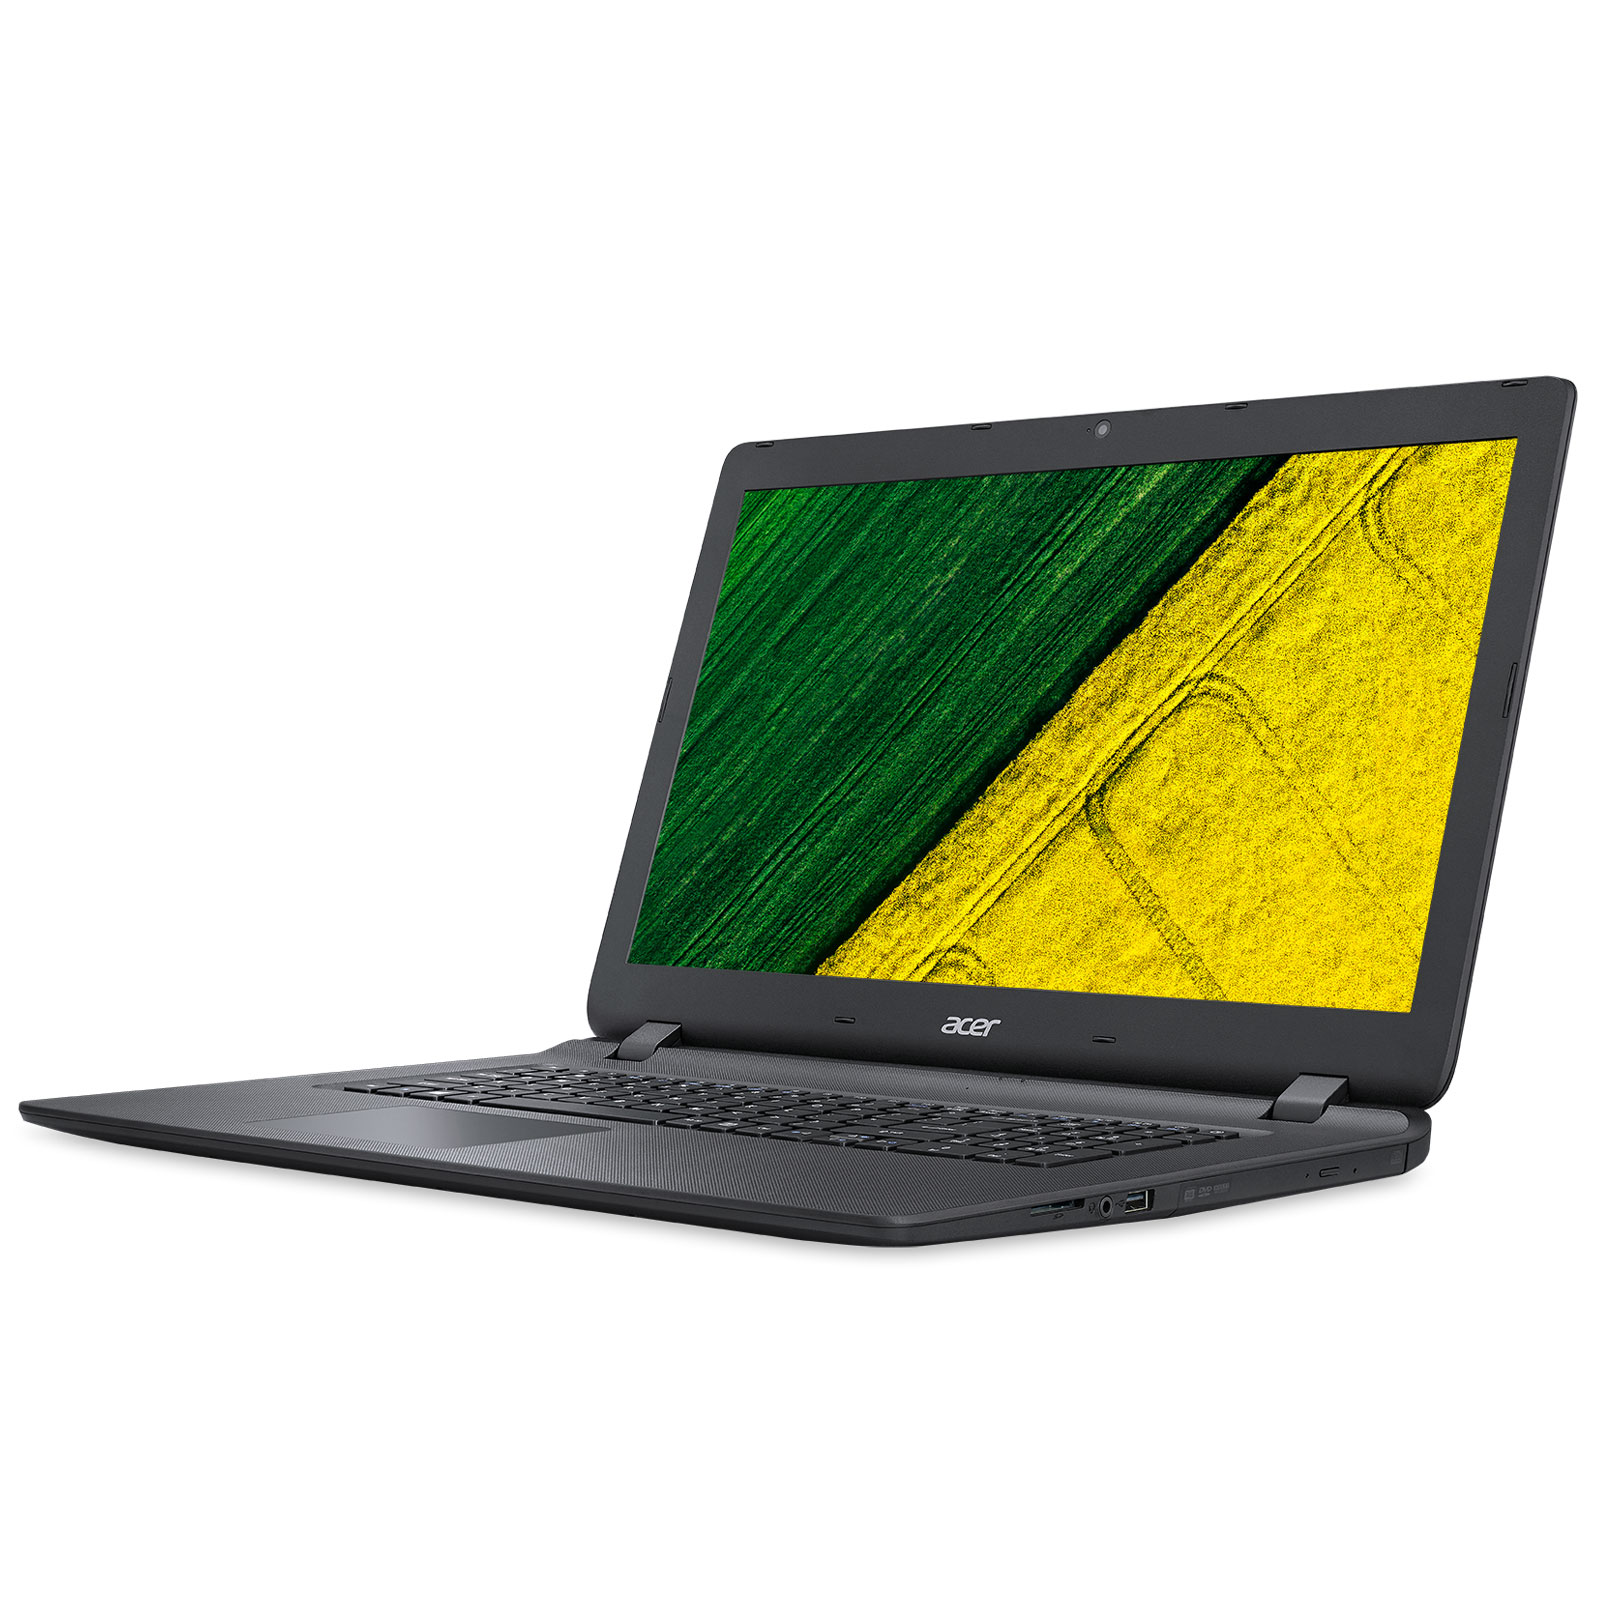 Ordinateur Portable Acer Aspire ES1-732, Quad Core N4200, SSD 256Go, 4Go DDR4, 17.3 pouces LED,informatique Reunion 974, Futur Réunion informatique